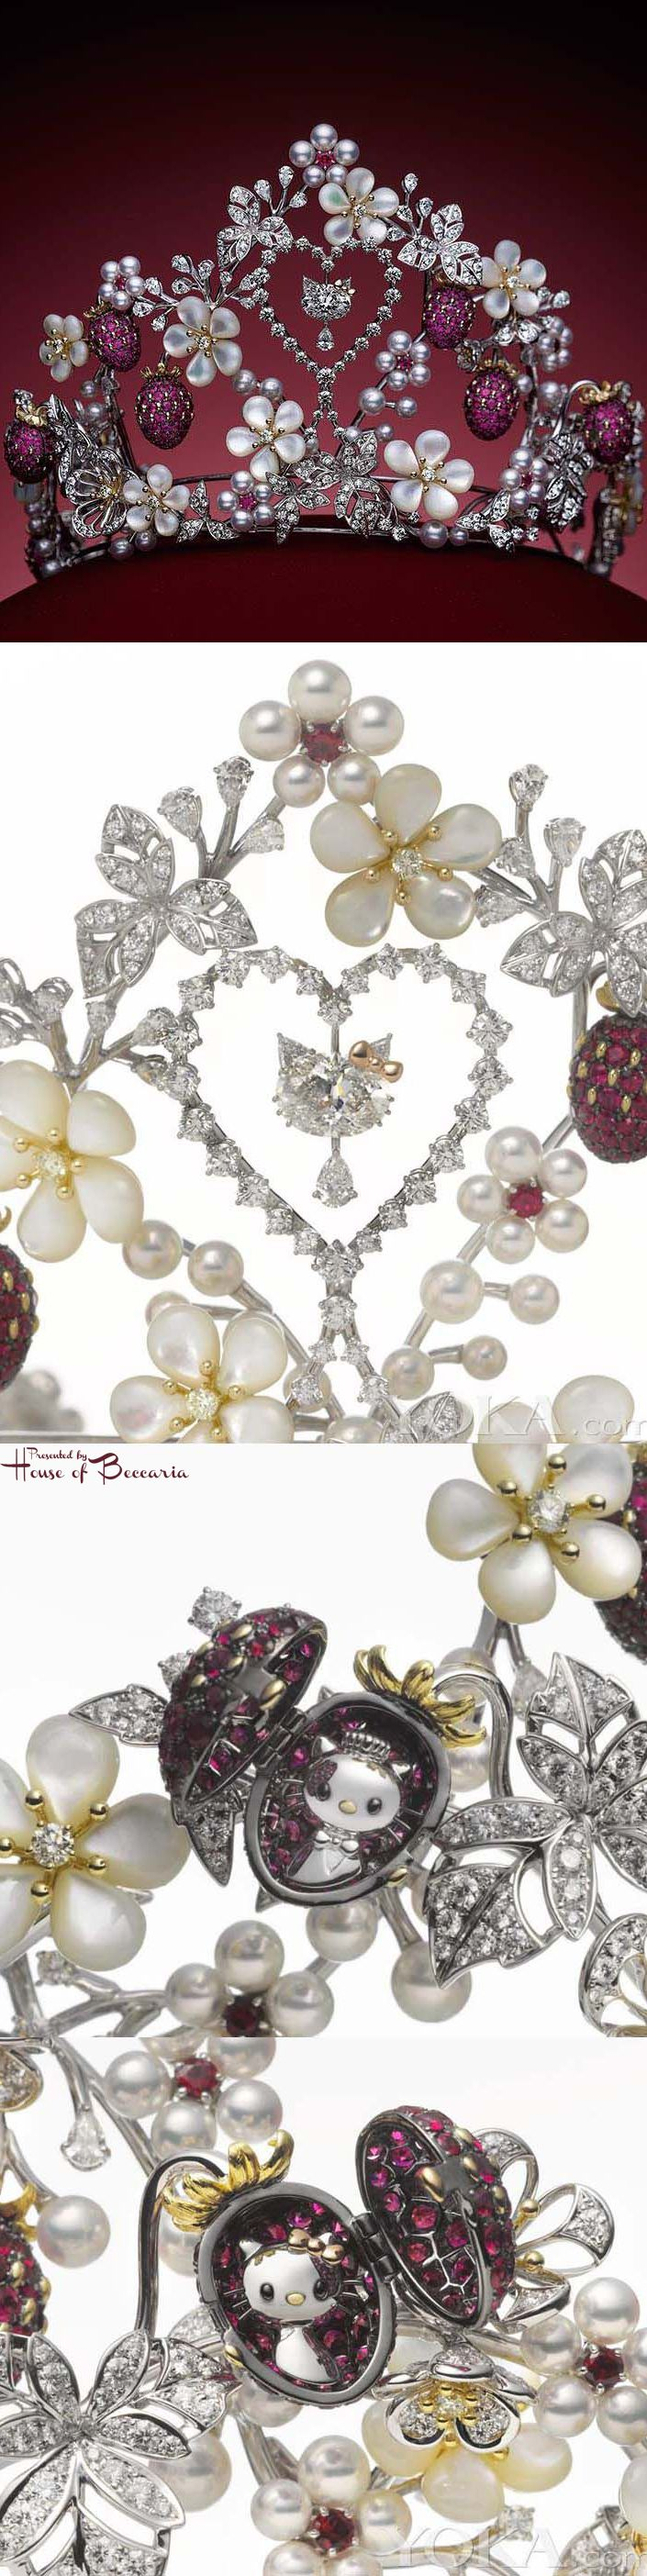 ~Mikimoto Hello Kitty tiara with strawberry motifs of rubies and flowers, designed with mother of pearls. The piece will not be for sale. The two strawberries decorating the sides of the tiara can be opened to reveal Hello Kitty and her boyfriend Daniel hidden inside. Twinkling in the center of the 3D piece is the iconic cat – with an oval-cut diamond for her face, claws for the whiskers and a pair of brilliant-cut diamonds for ears | House of Beccaria